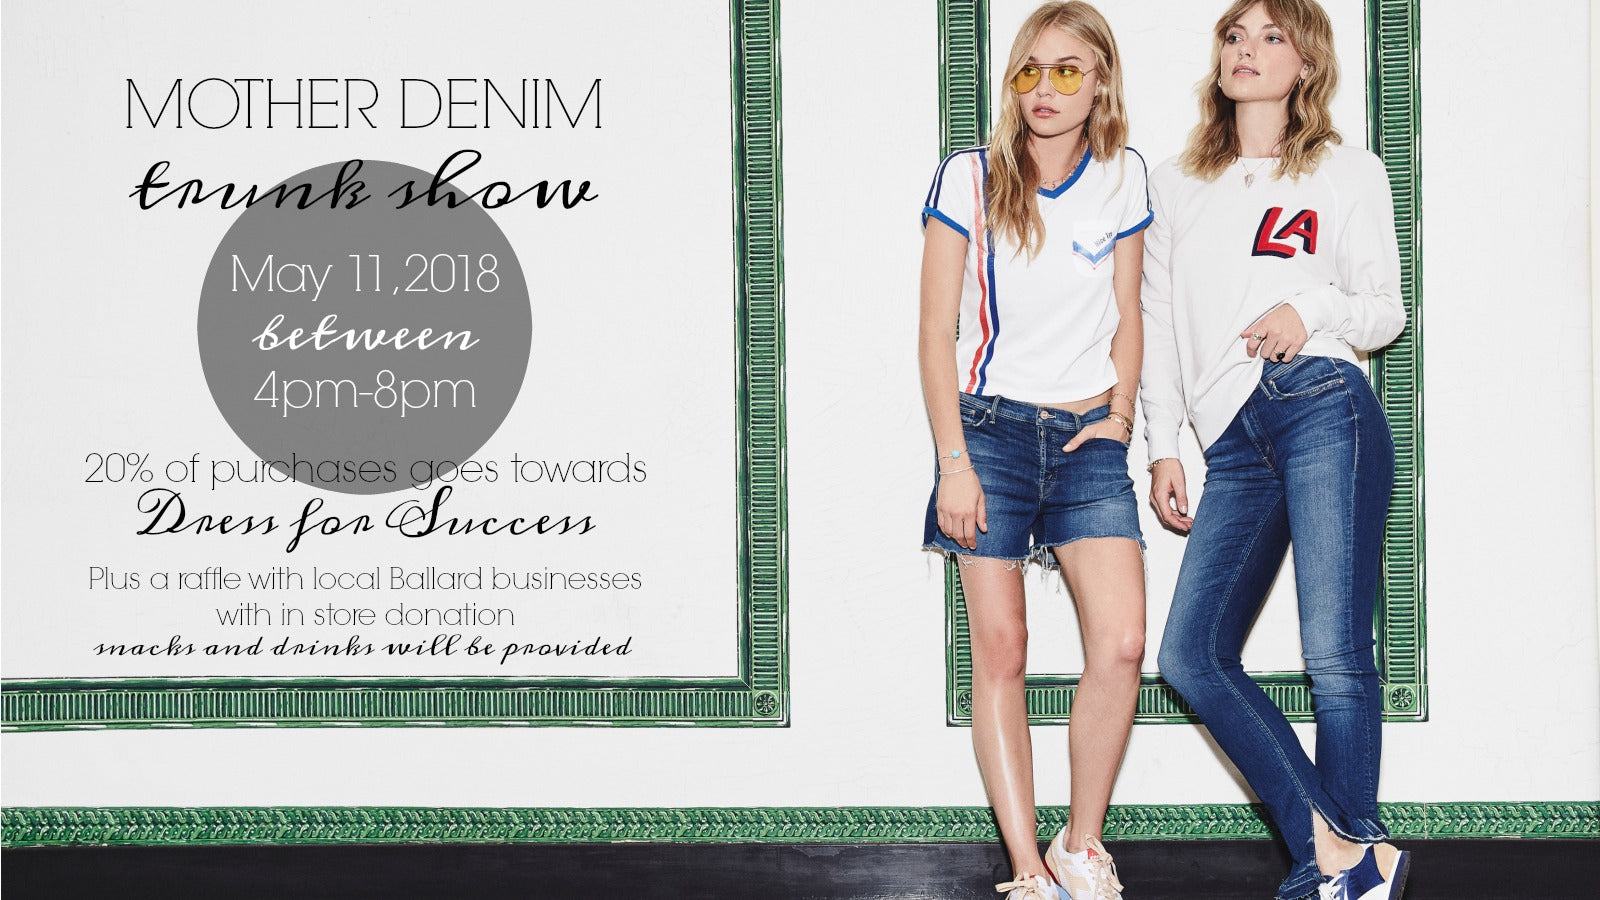 Mother Denim Trunk Show: May 11th